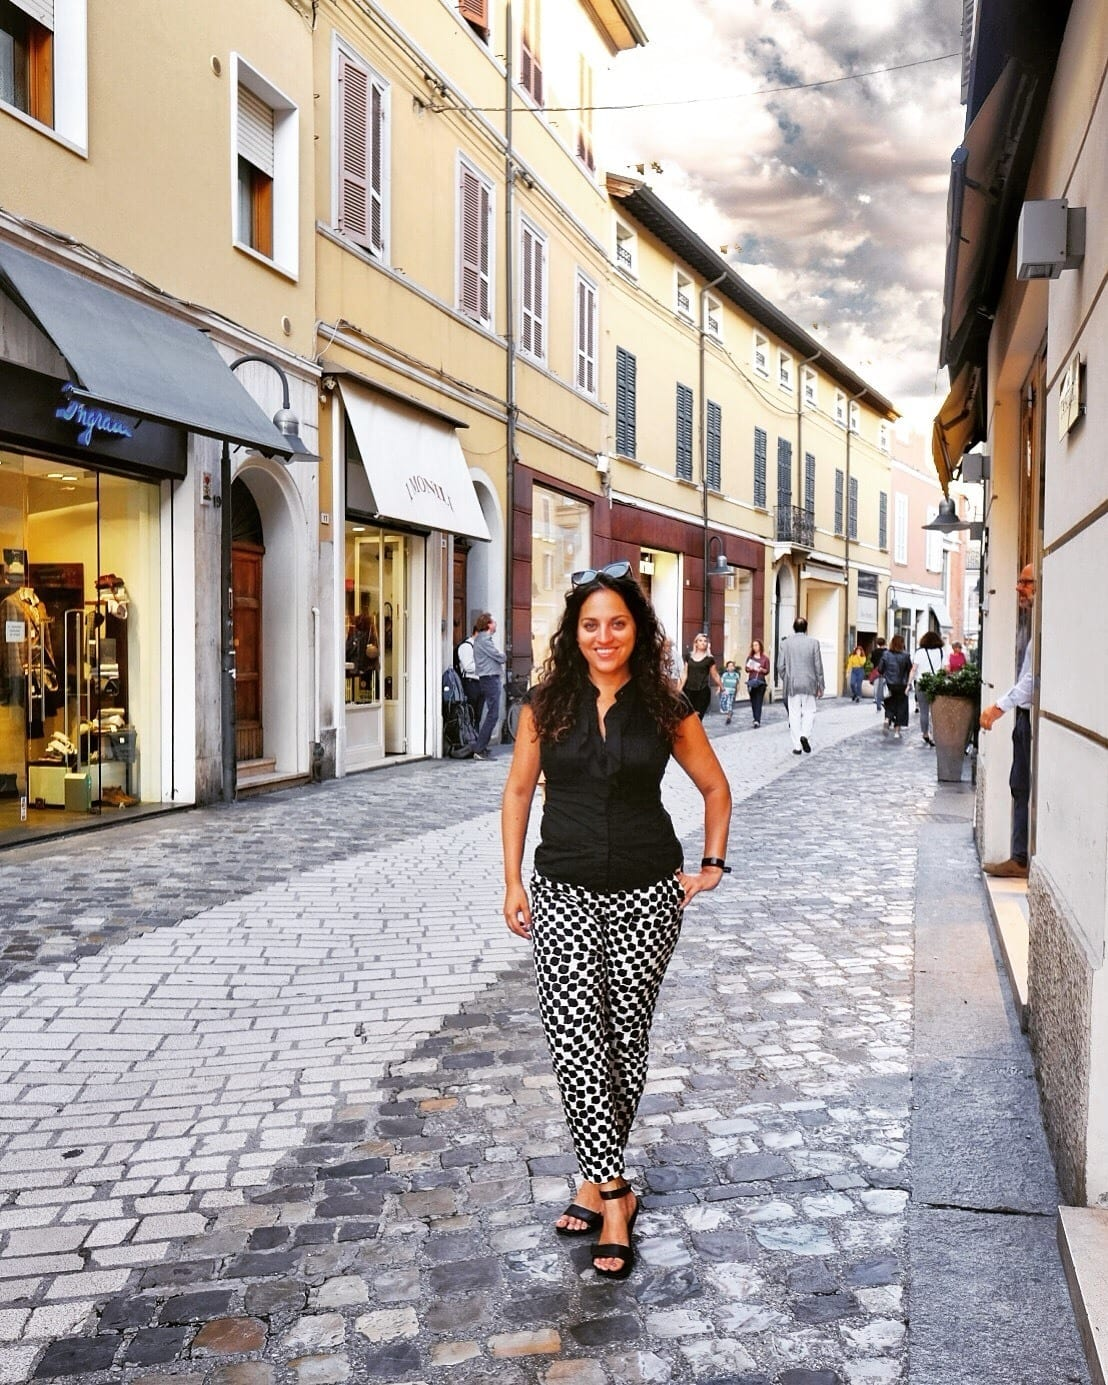 Kate stands on a cobblestone street in Ravenna, Italy, in front of boutique shops in yellow buildings. She wears black and white patterned pants and a sleeveless black blouse.